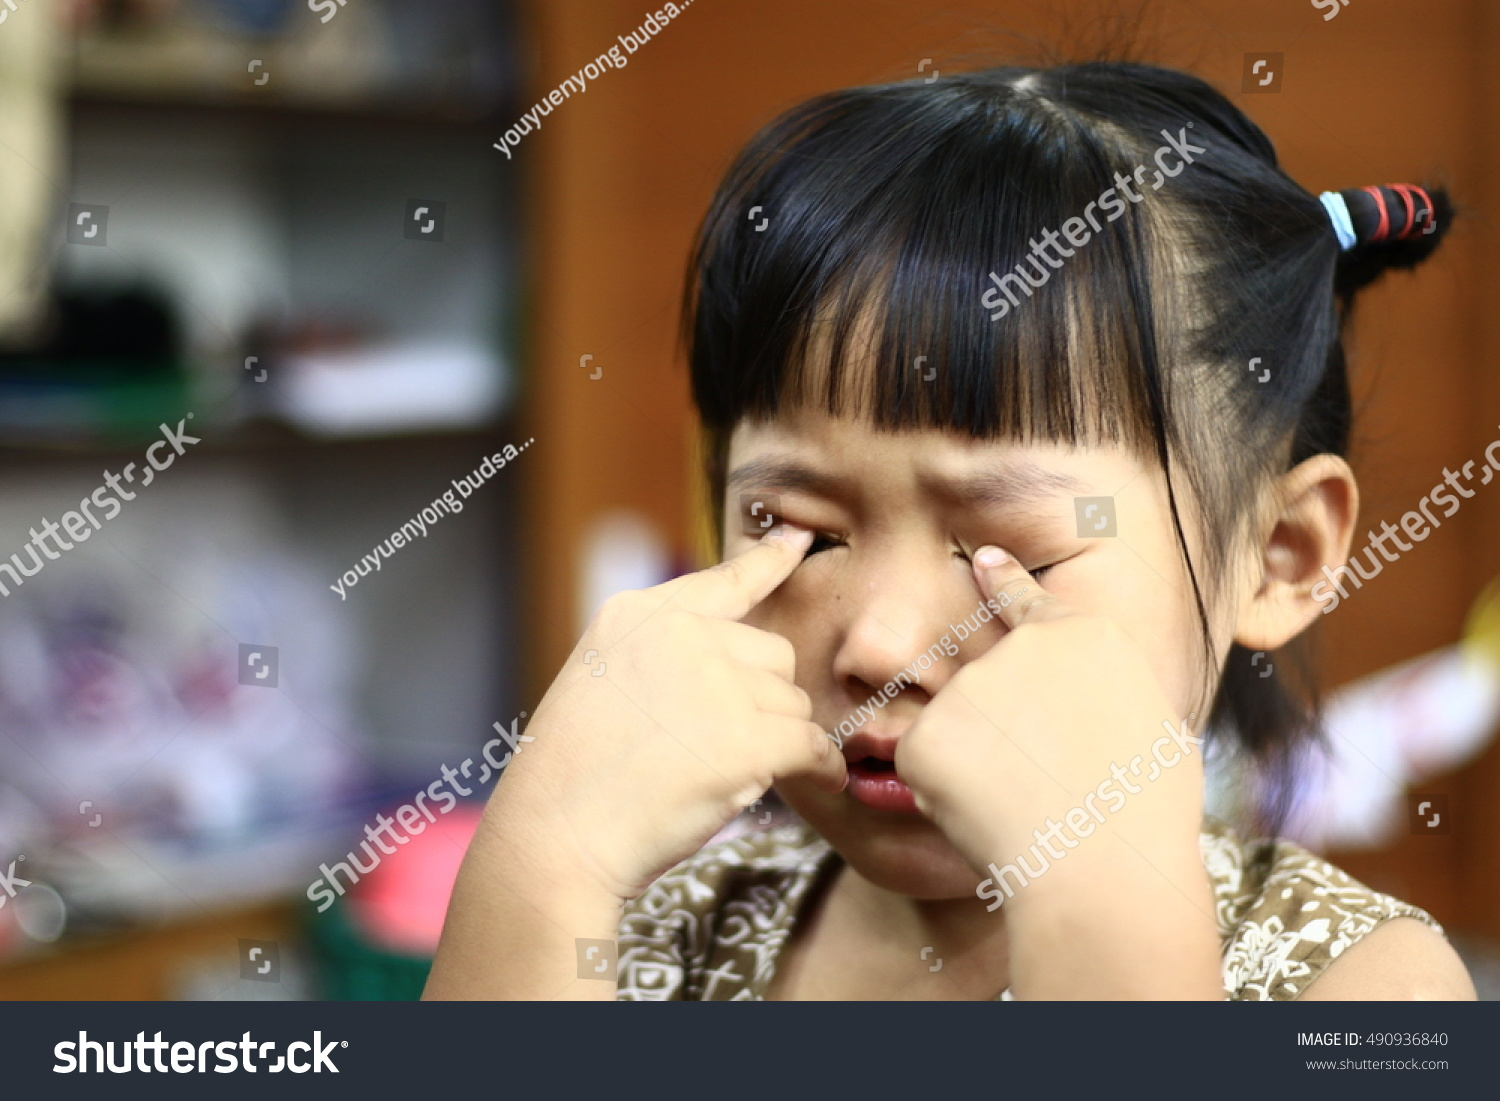 childs eyes asian love portrait cute stock photo (safe to use